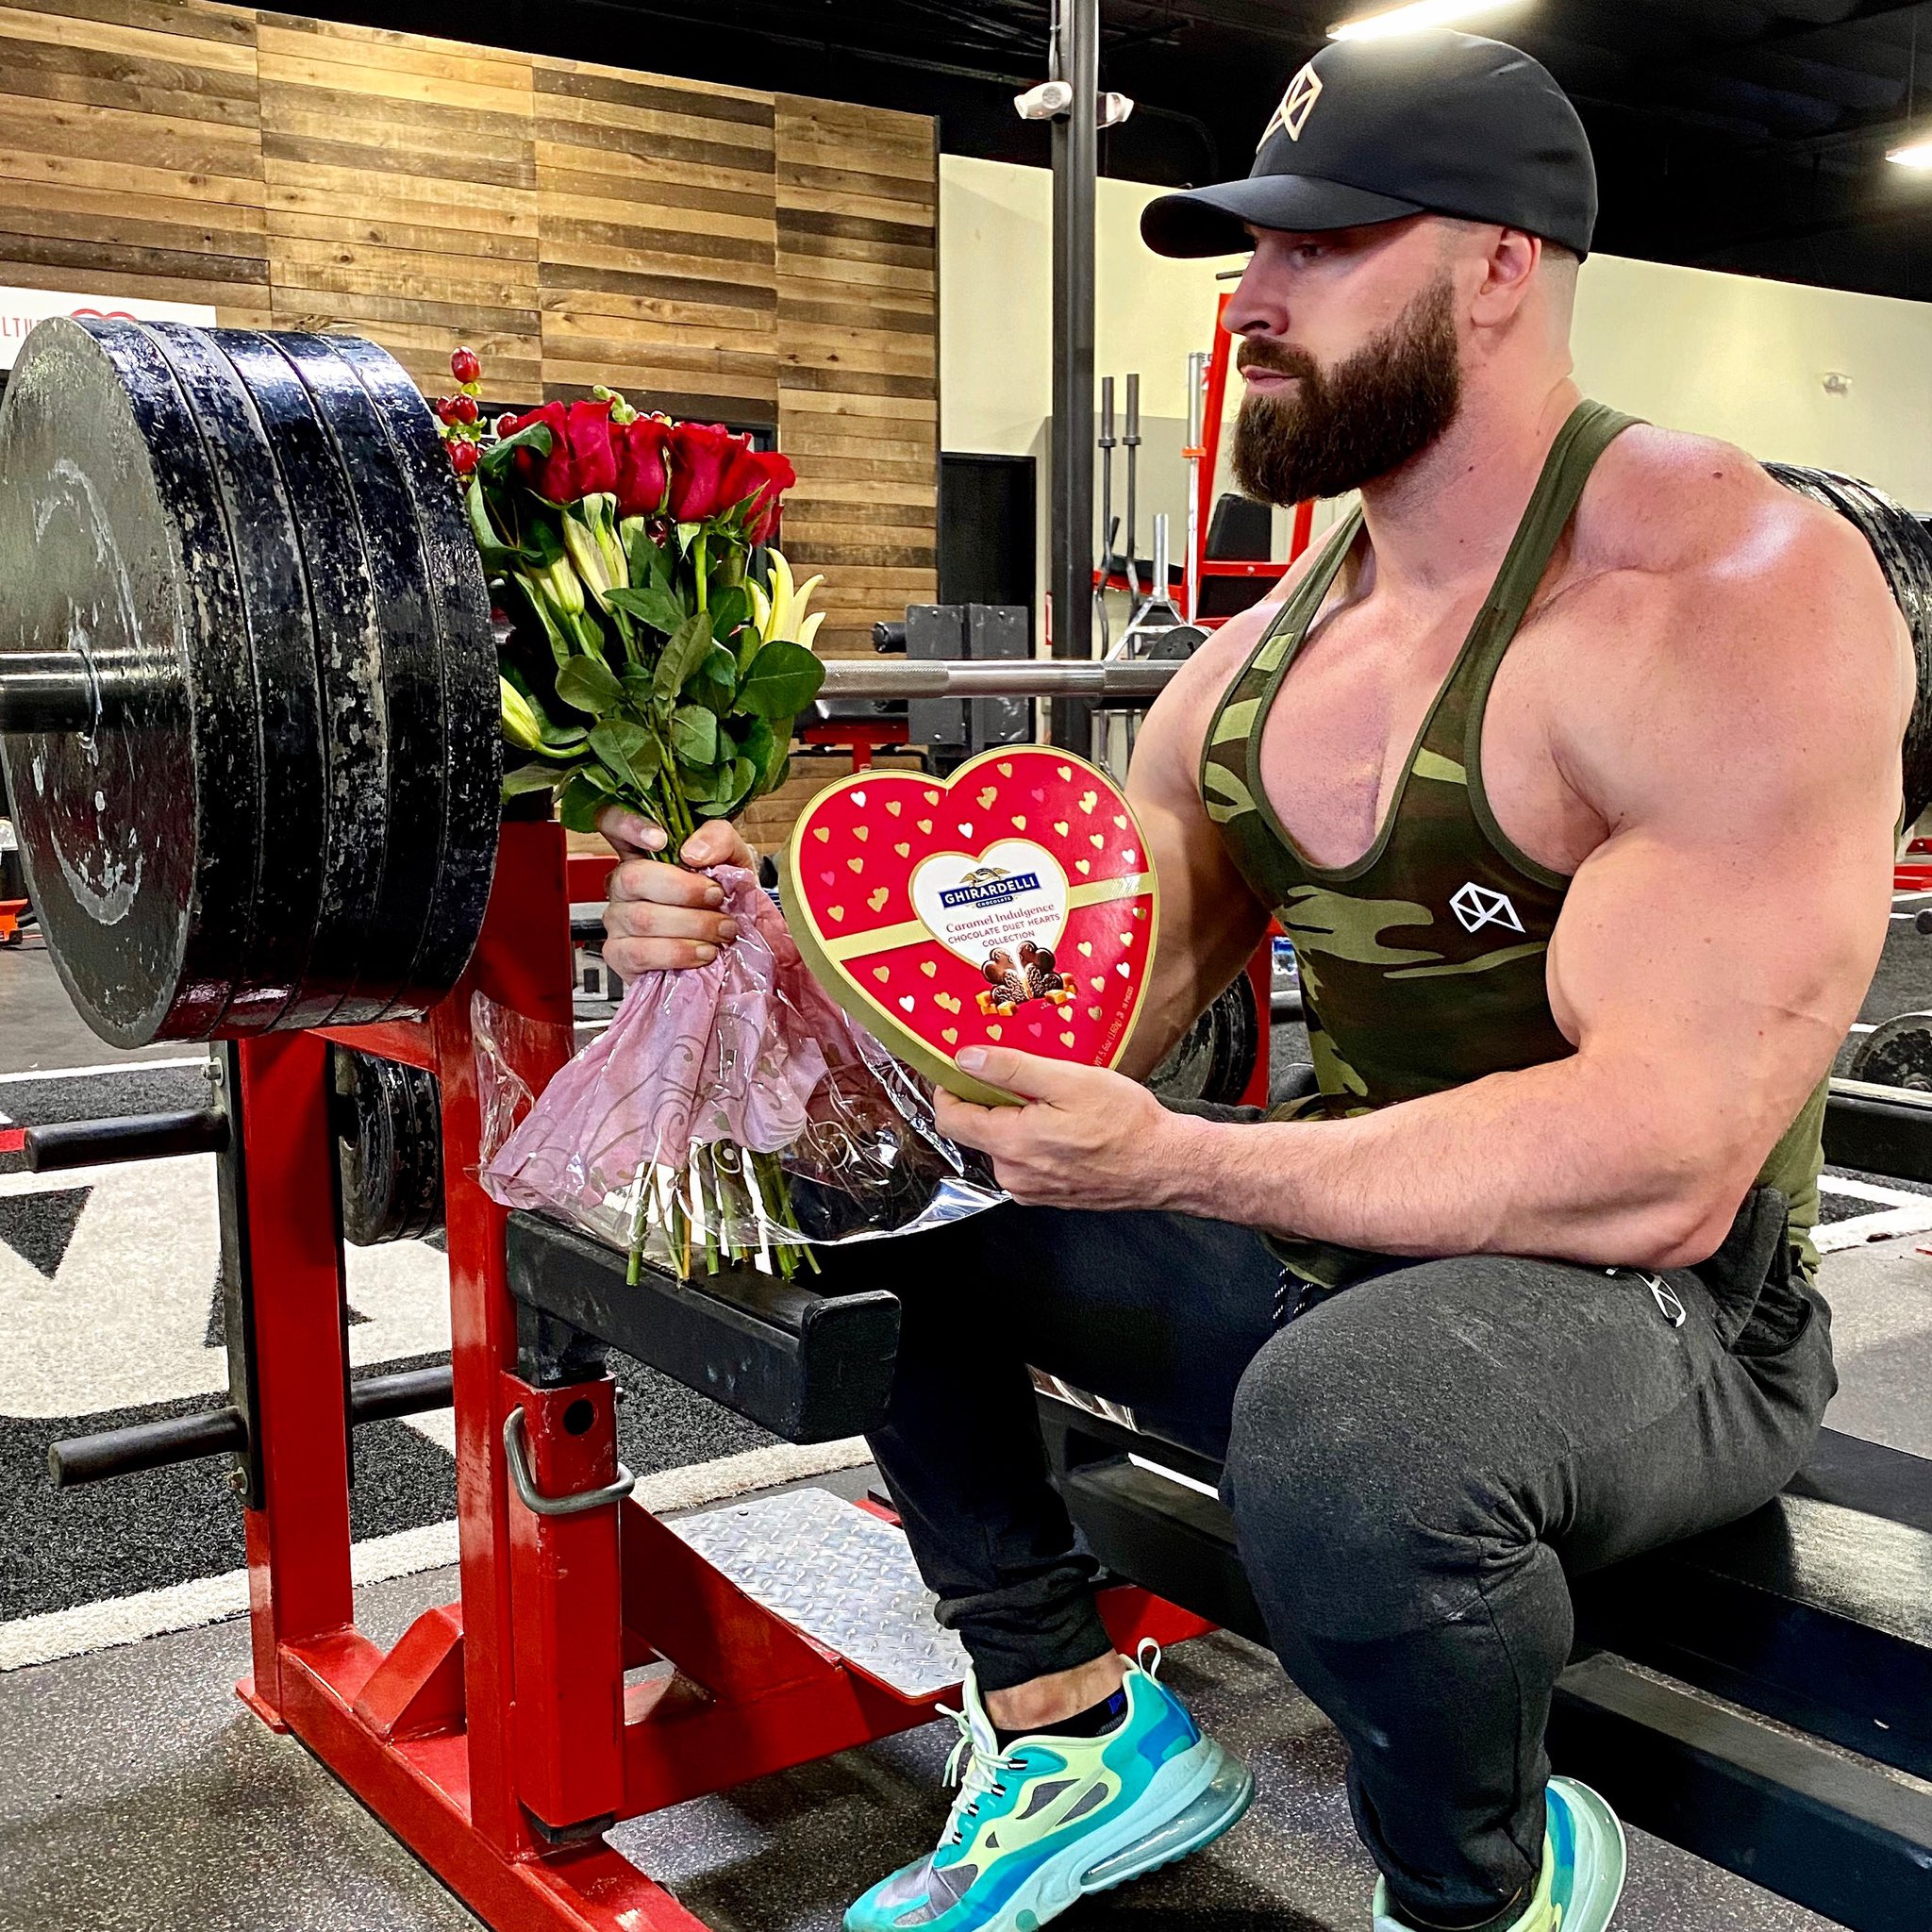 Bradley Martyn On Twitter Happy Valentine S Day Submitted 7 months ago by broskibro69. bradley martyn on twitter happy